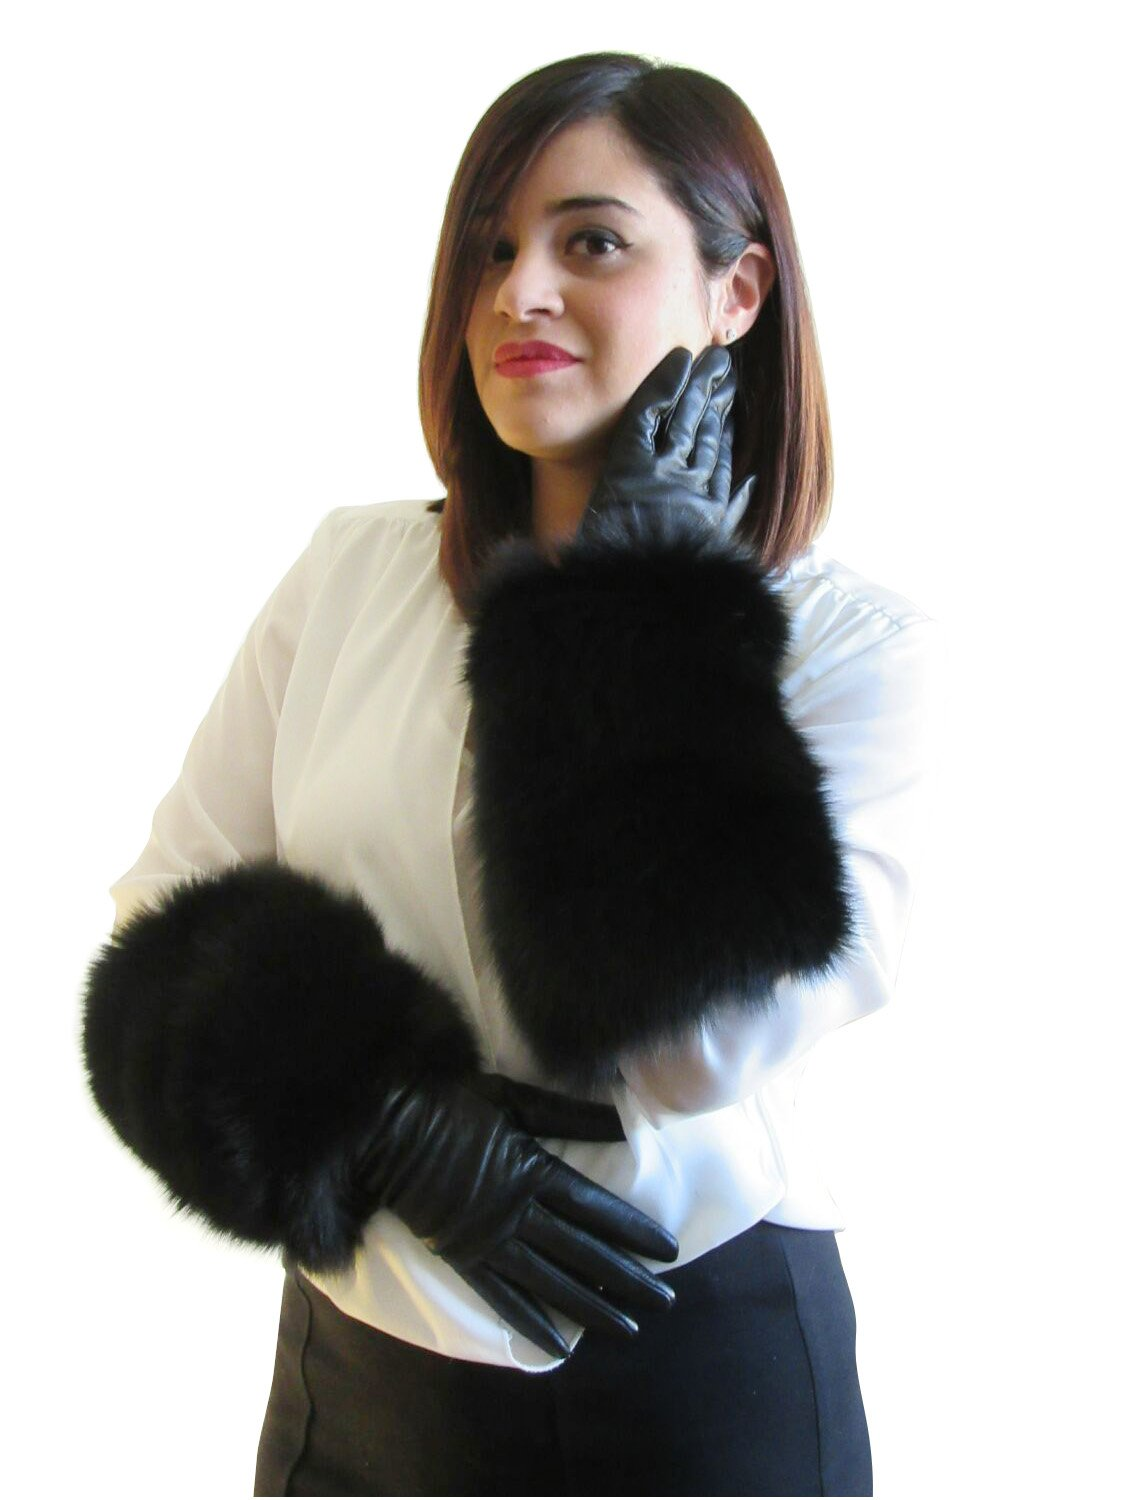 Black Cashmere Lined Leather Gloves Extended to Opera Length by Black Fox Cuffs 6.5 by FursNewYork